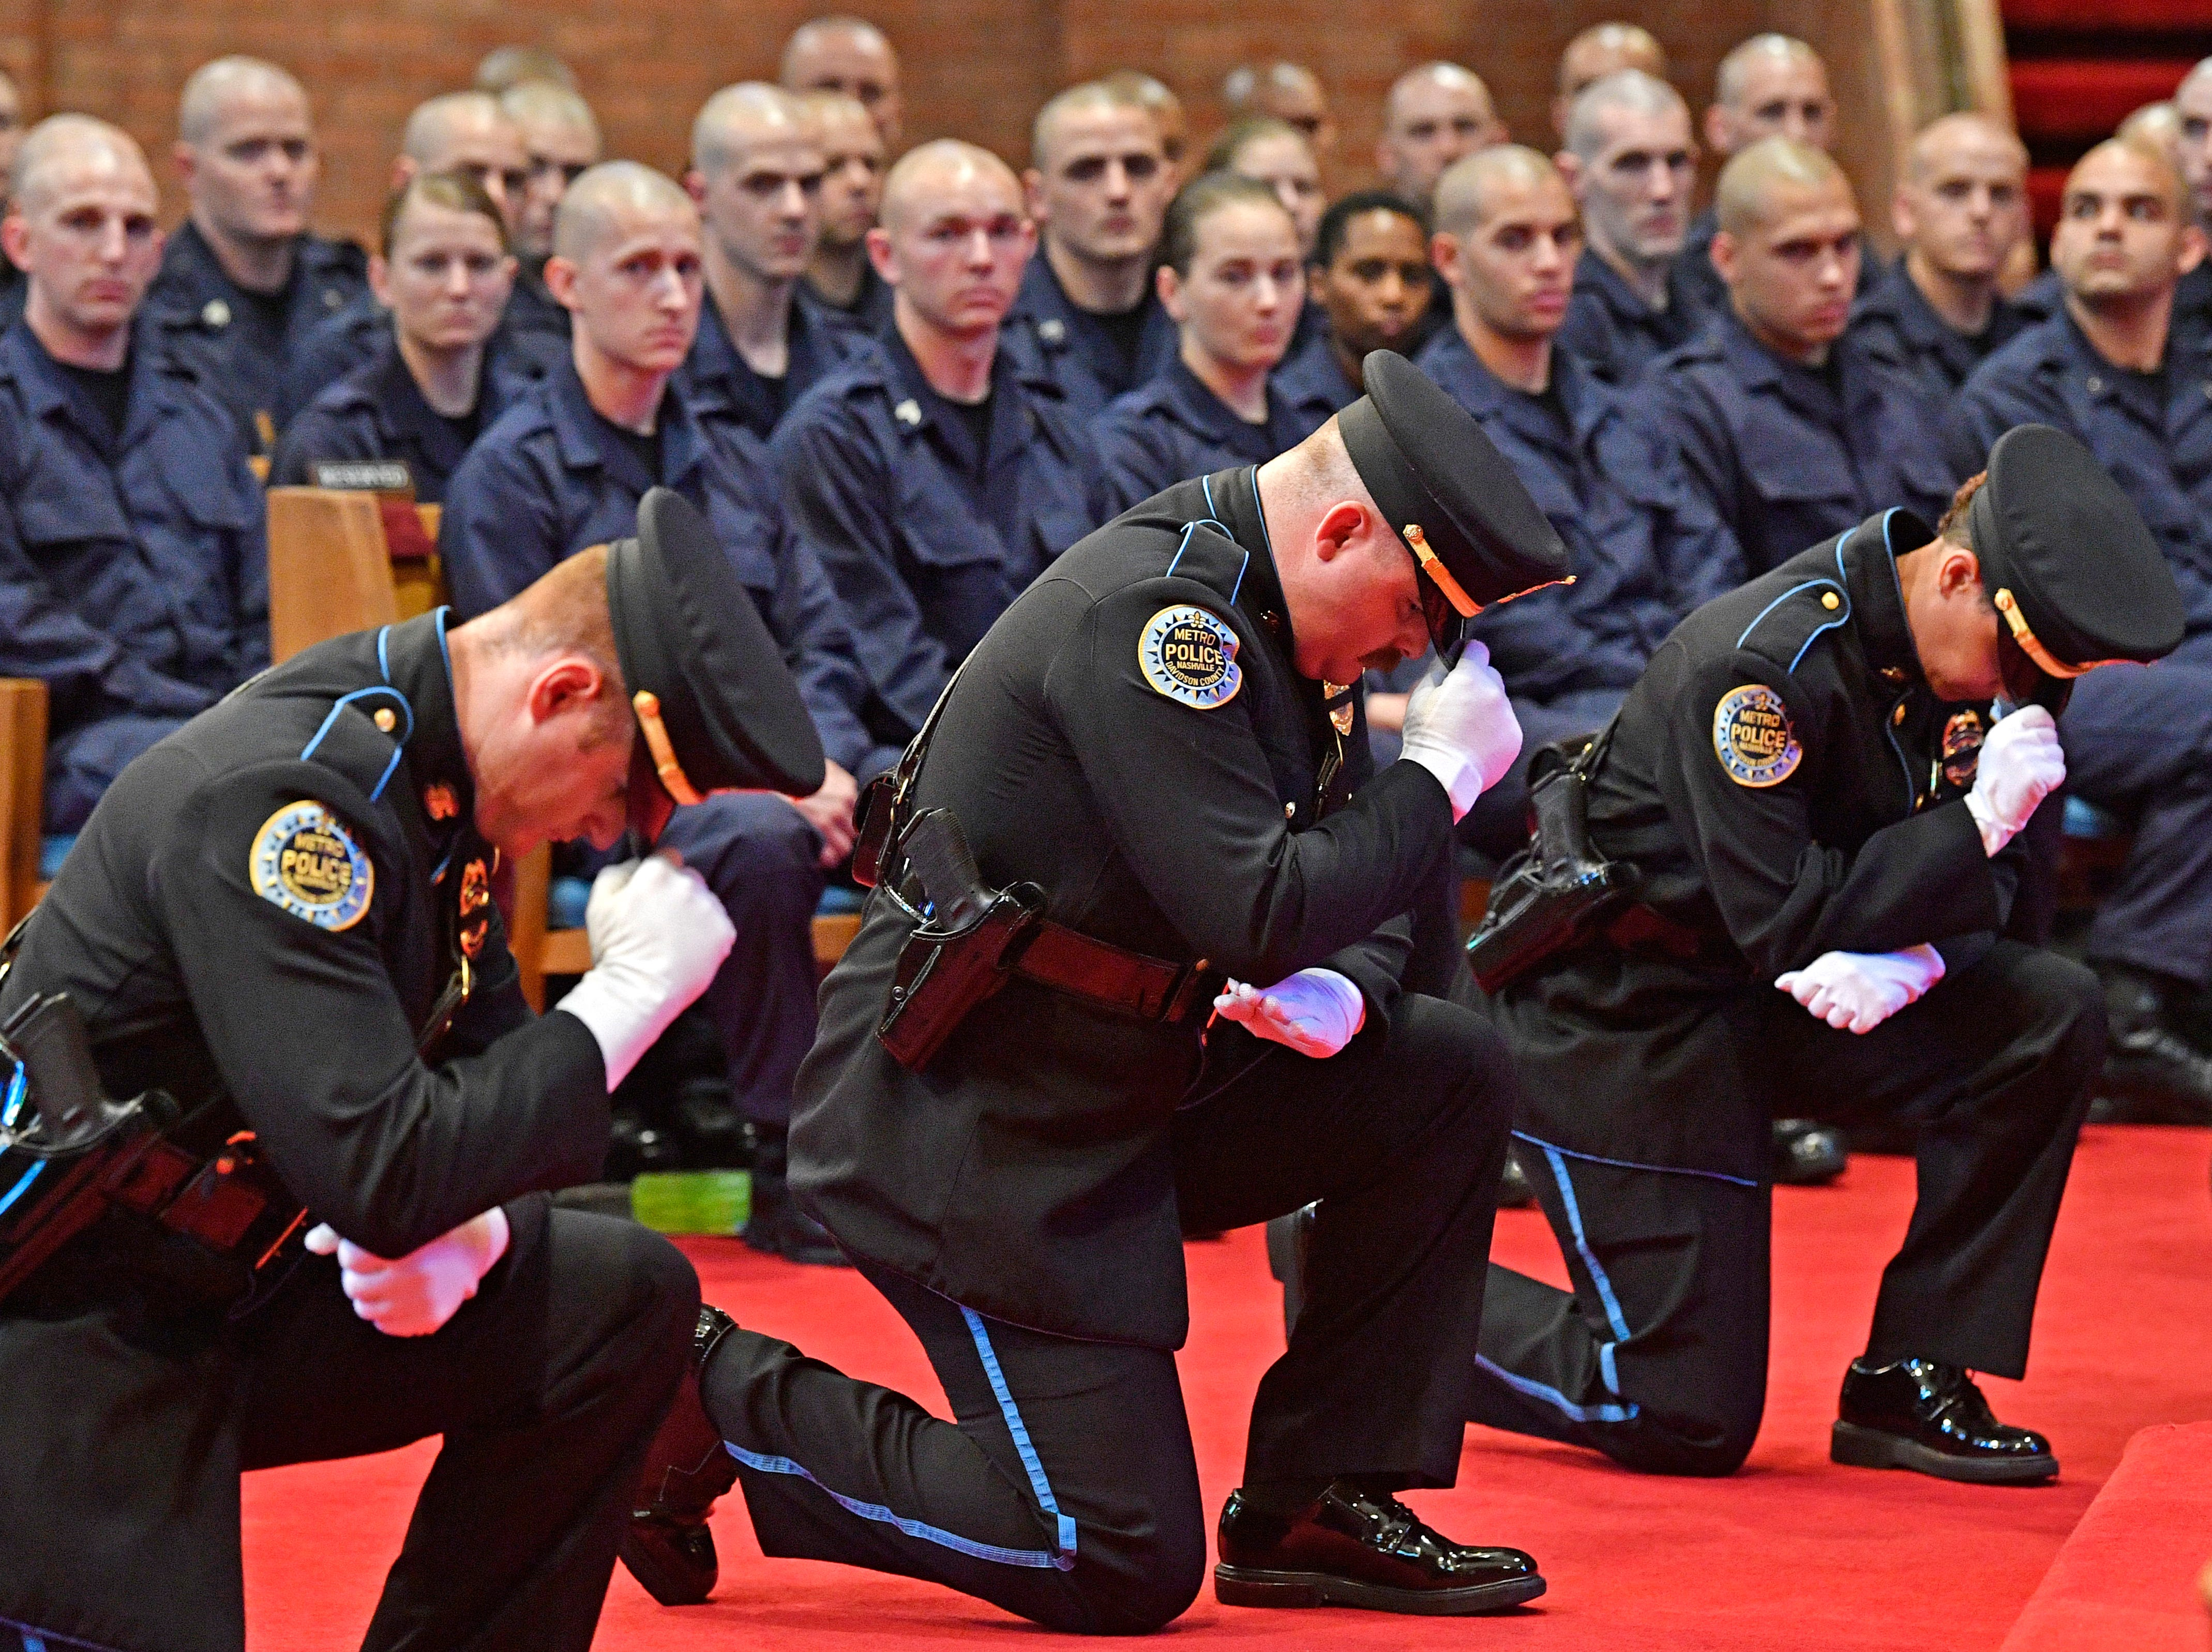 The Police Drill and Ceremony Team kneel in honor of officers that have fallen at the annual memorial service honoring Nashville's police officers who have died in service to the city Thursday, May 9, 2019, in Nashville, Tenn.